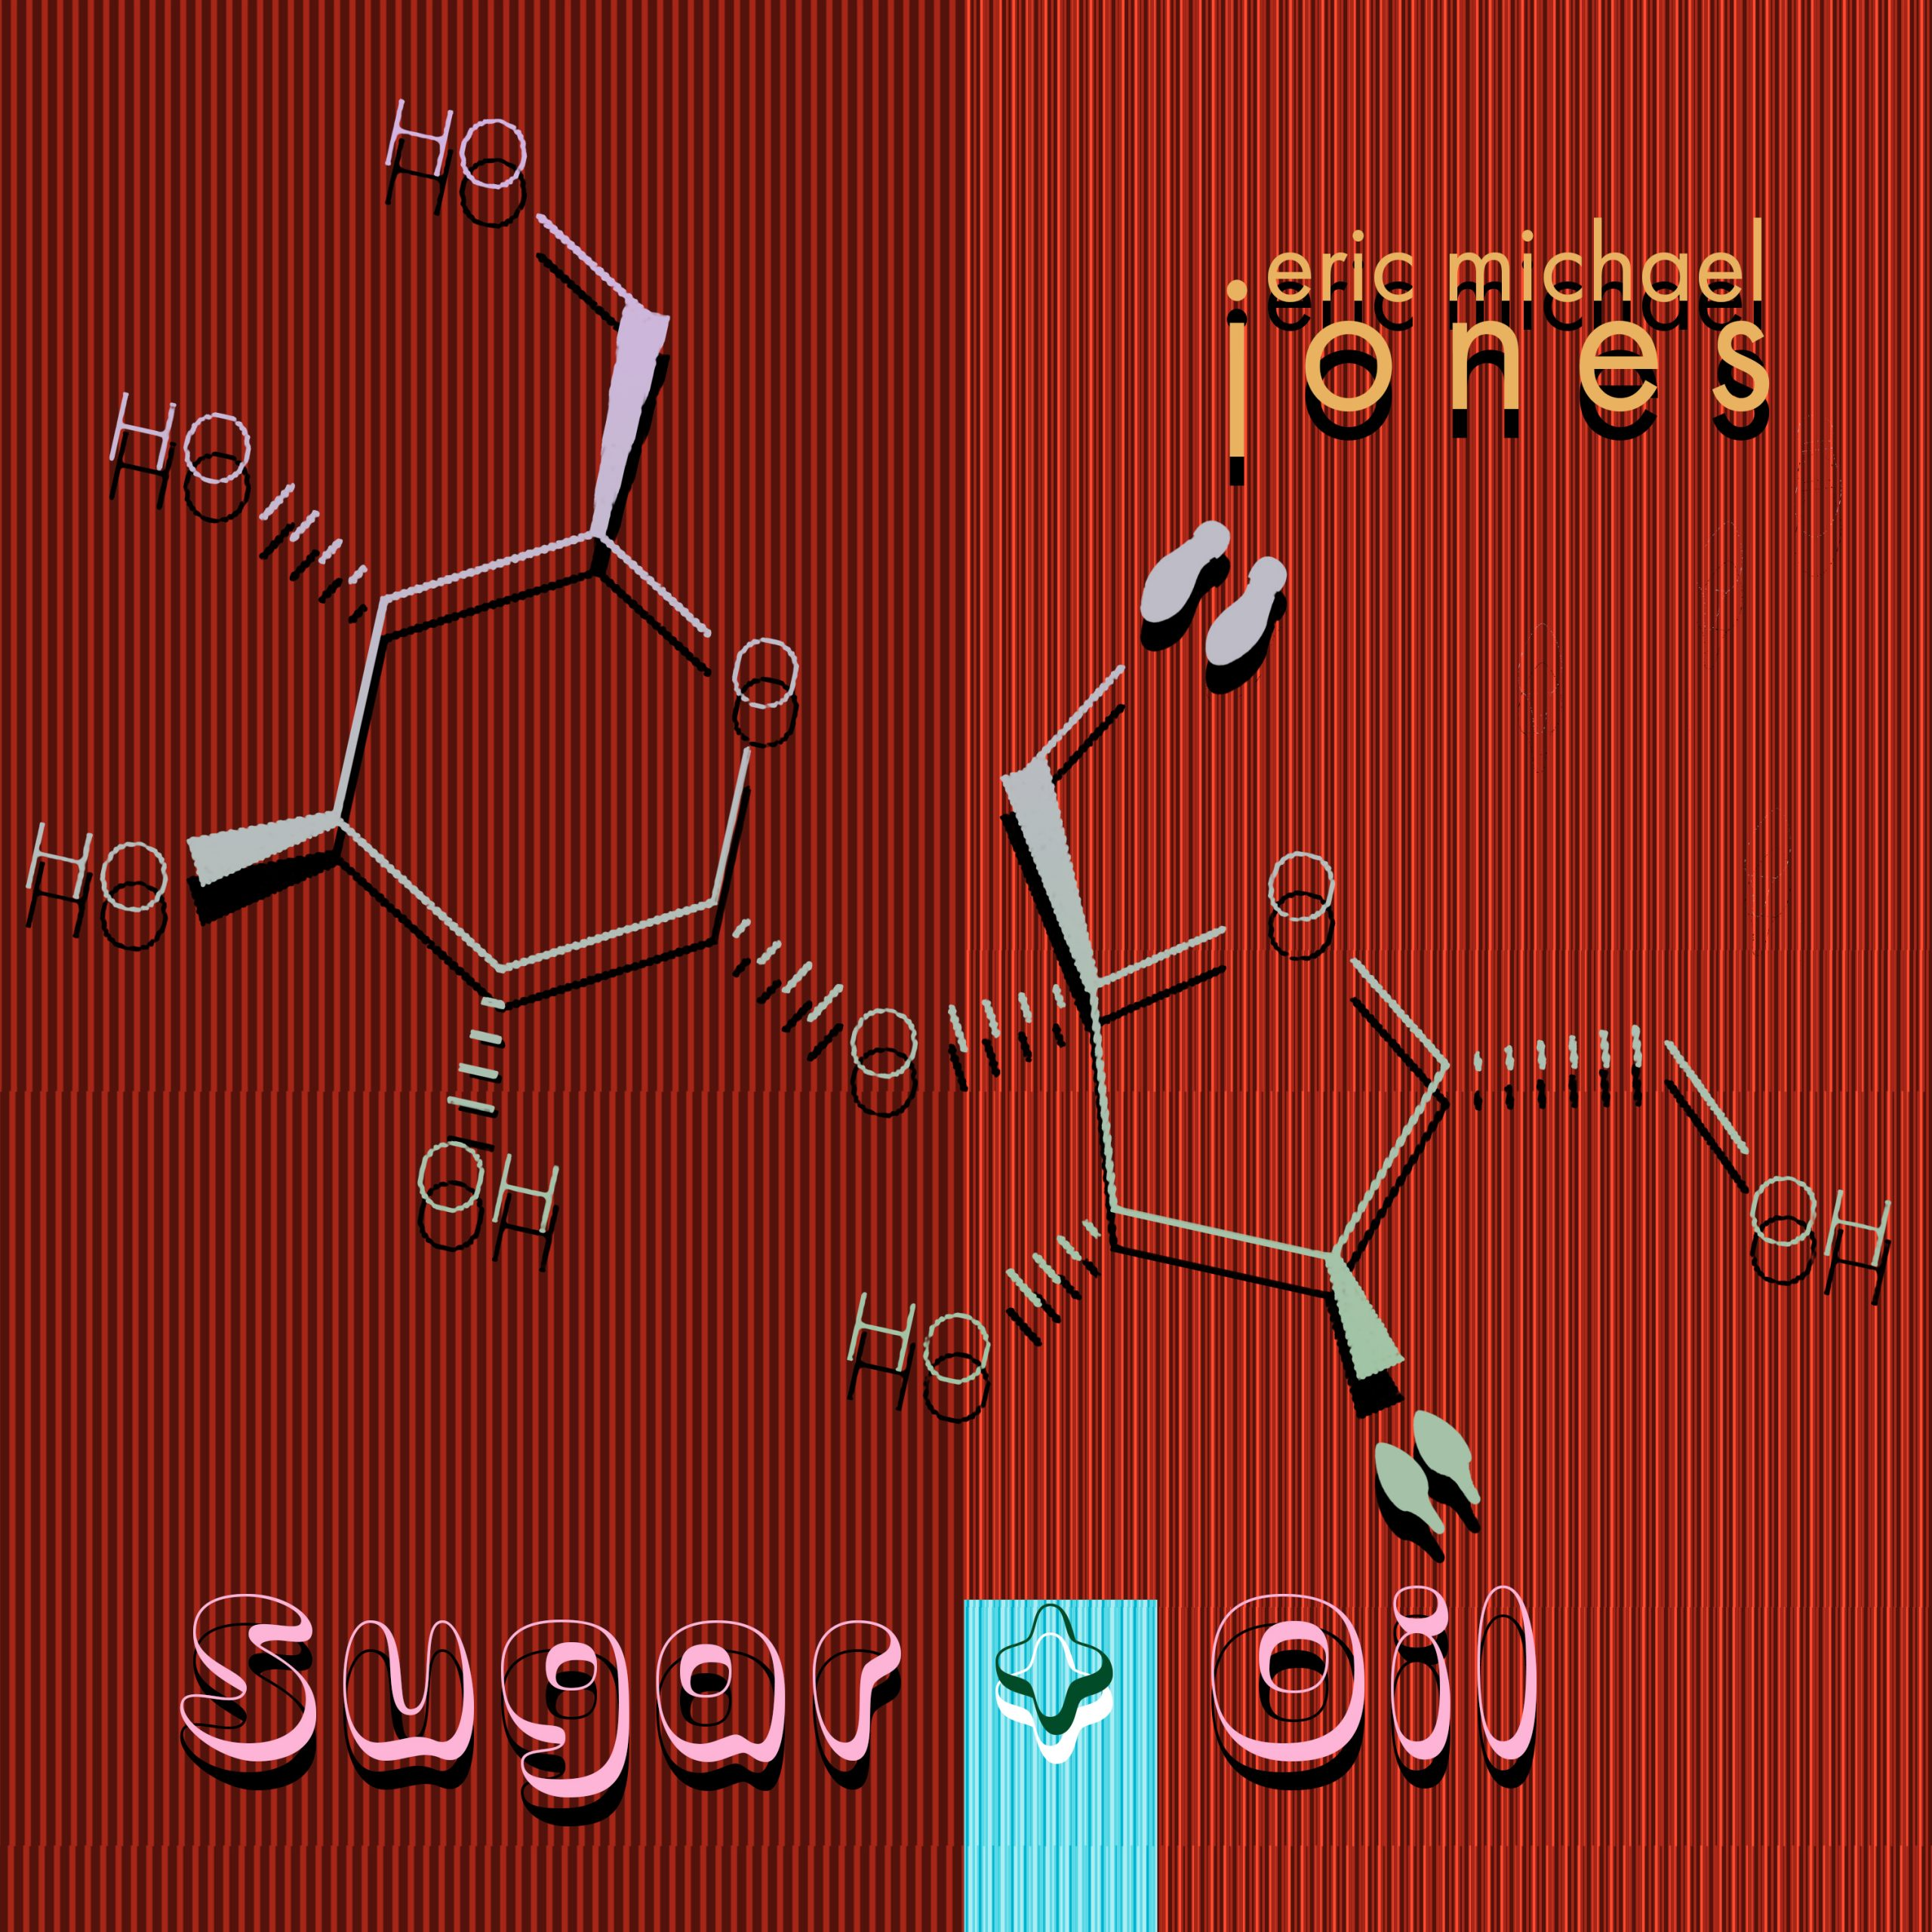 Cover art for Sugar And Oil shows a graphic design of molecules dancing